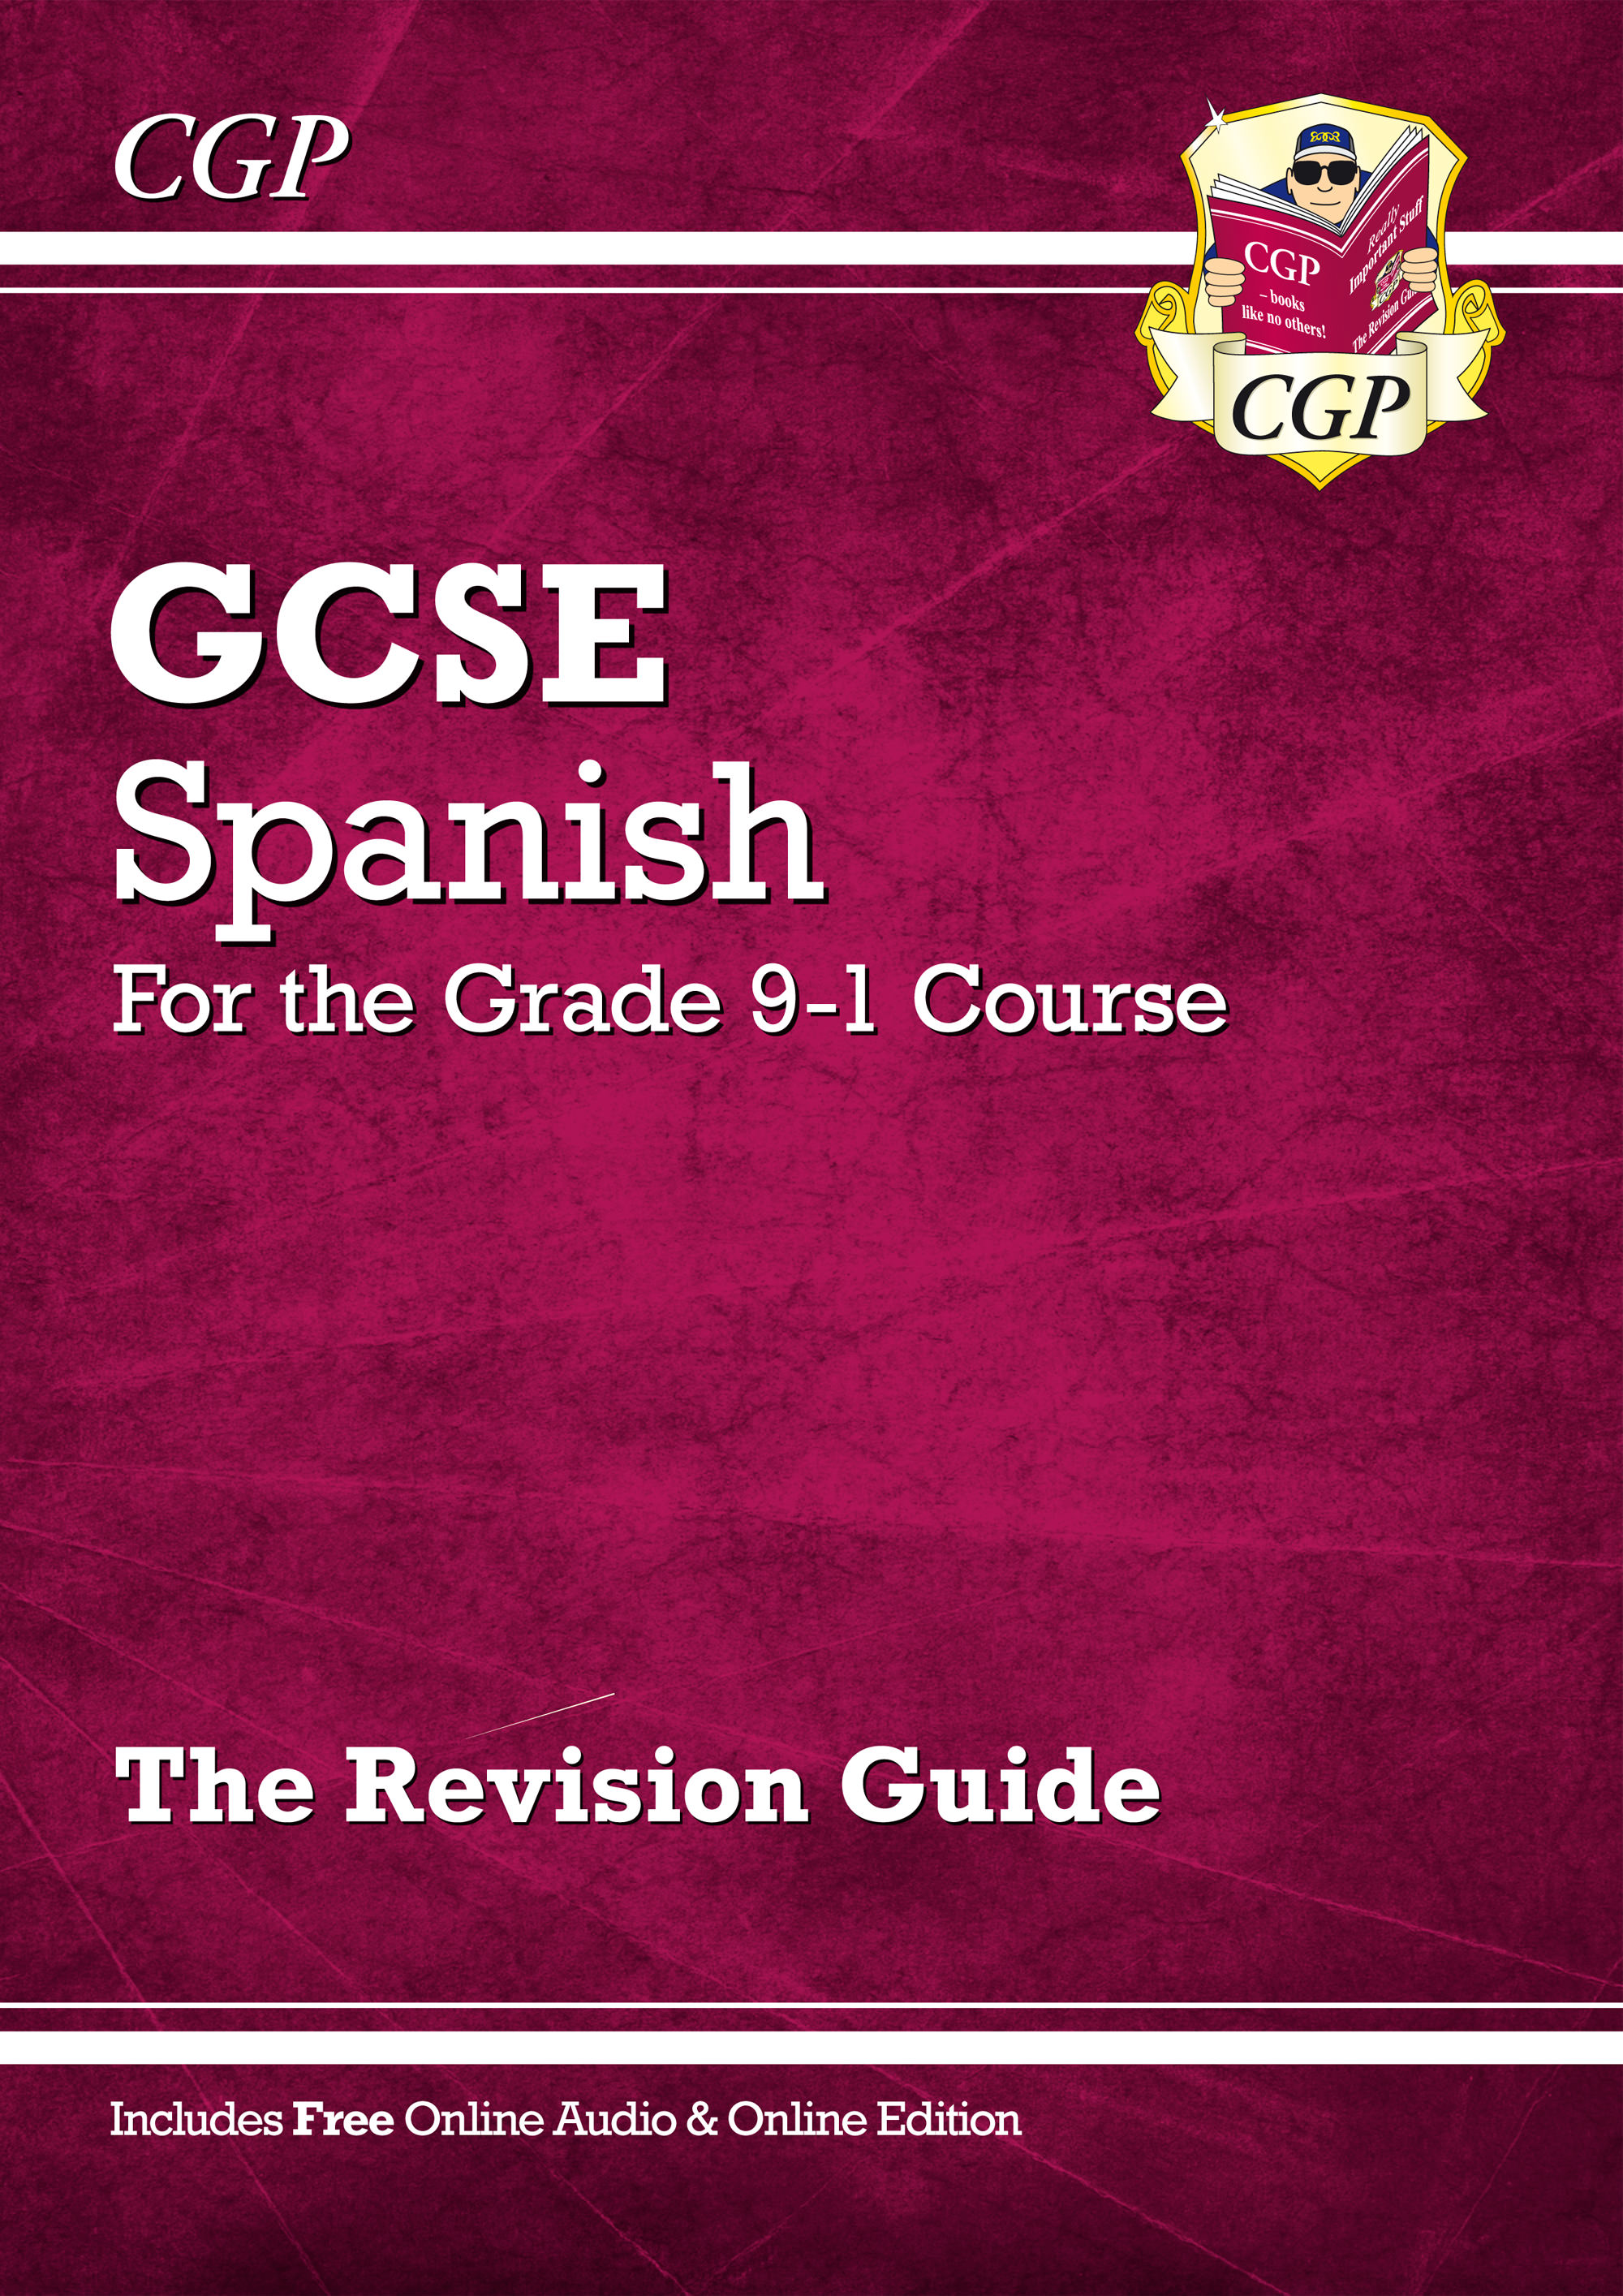 SPHR44 - GCSE Spanish Revision Guide - for the Grade 9-1 Course (with Online Edition)